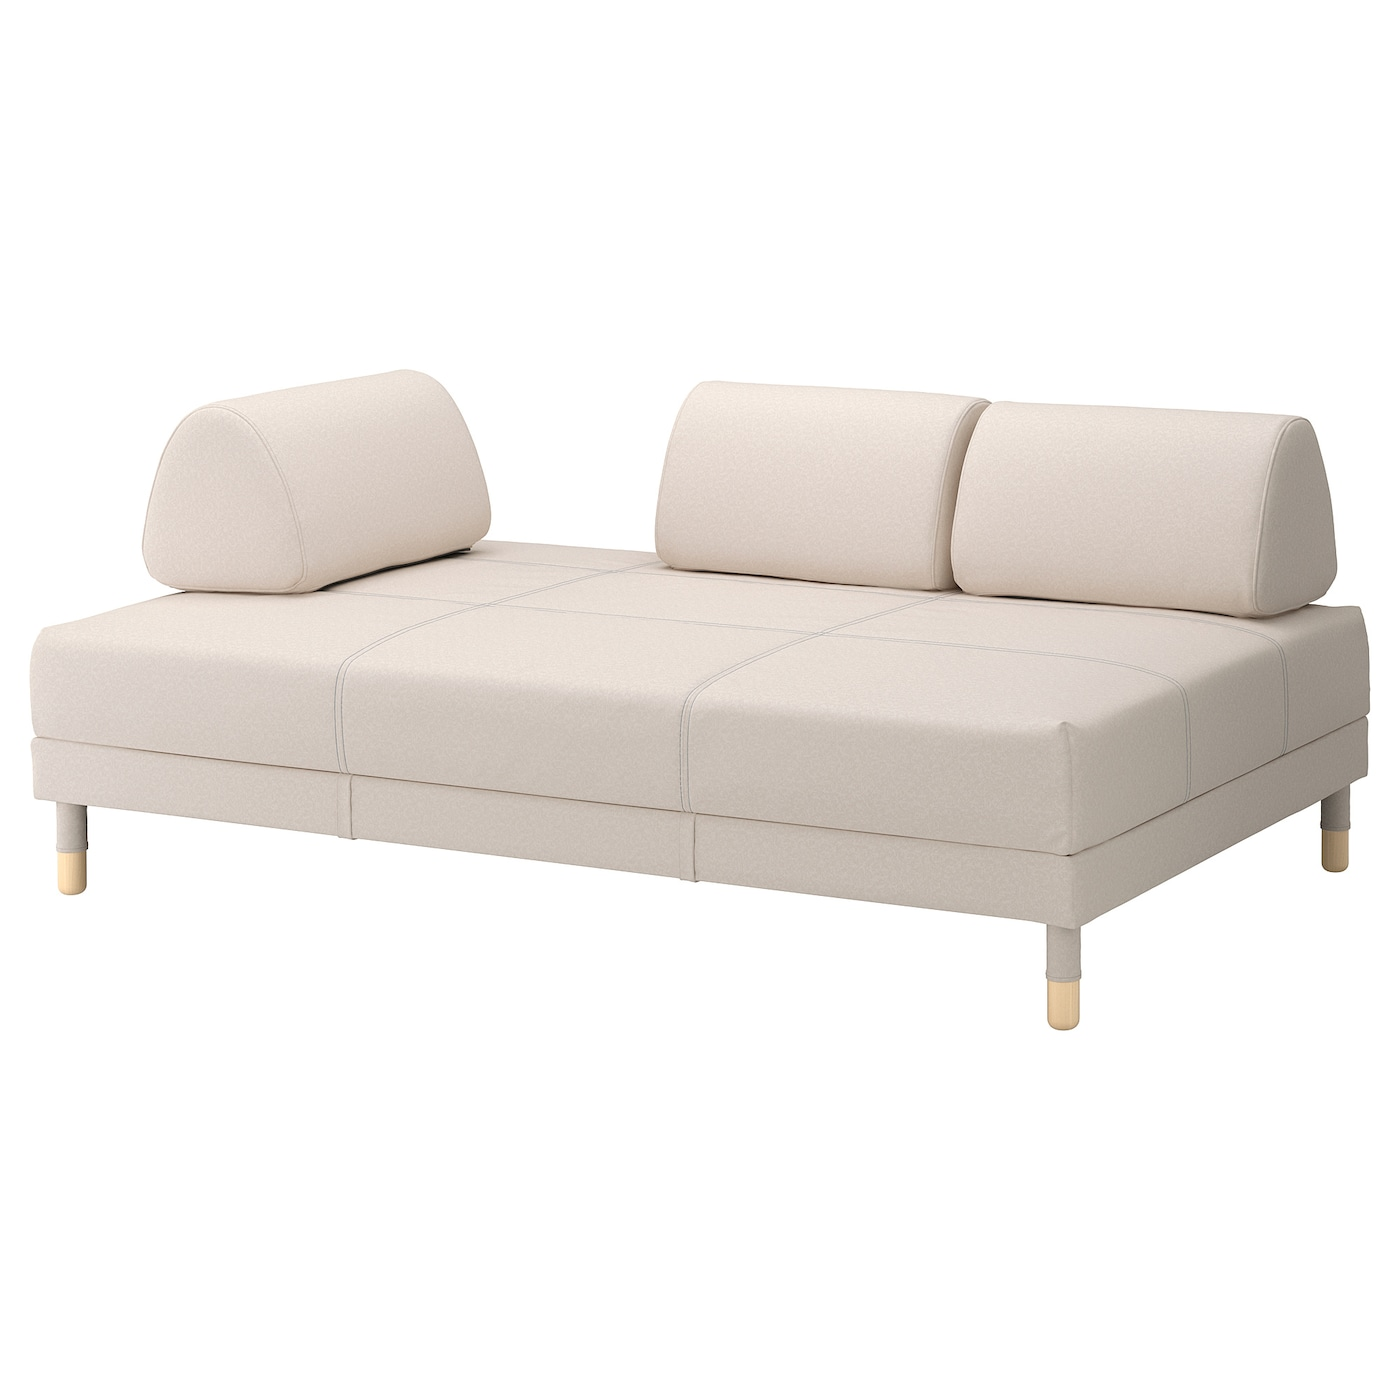 Flottebo sofa bed vissle beige 120 cm ikea for 90 cm sofa bed